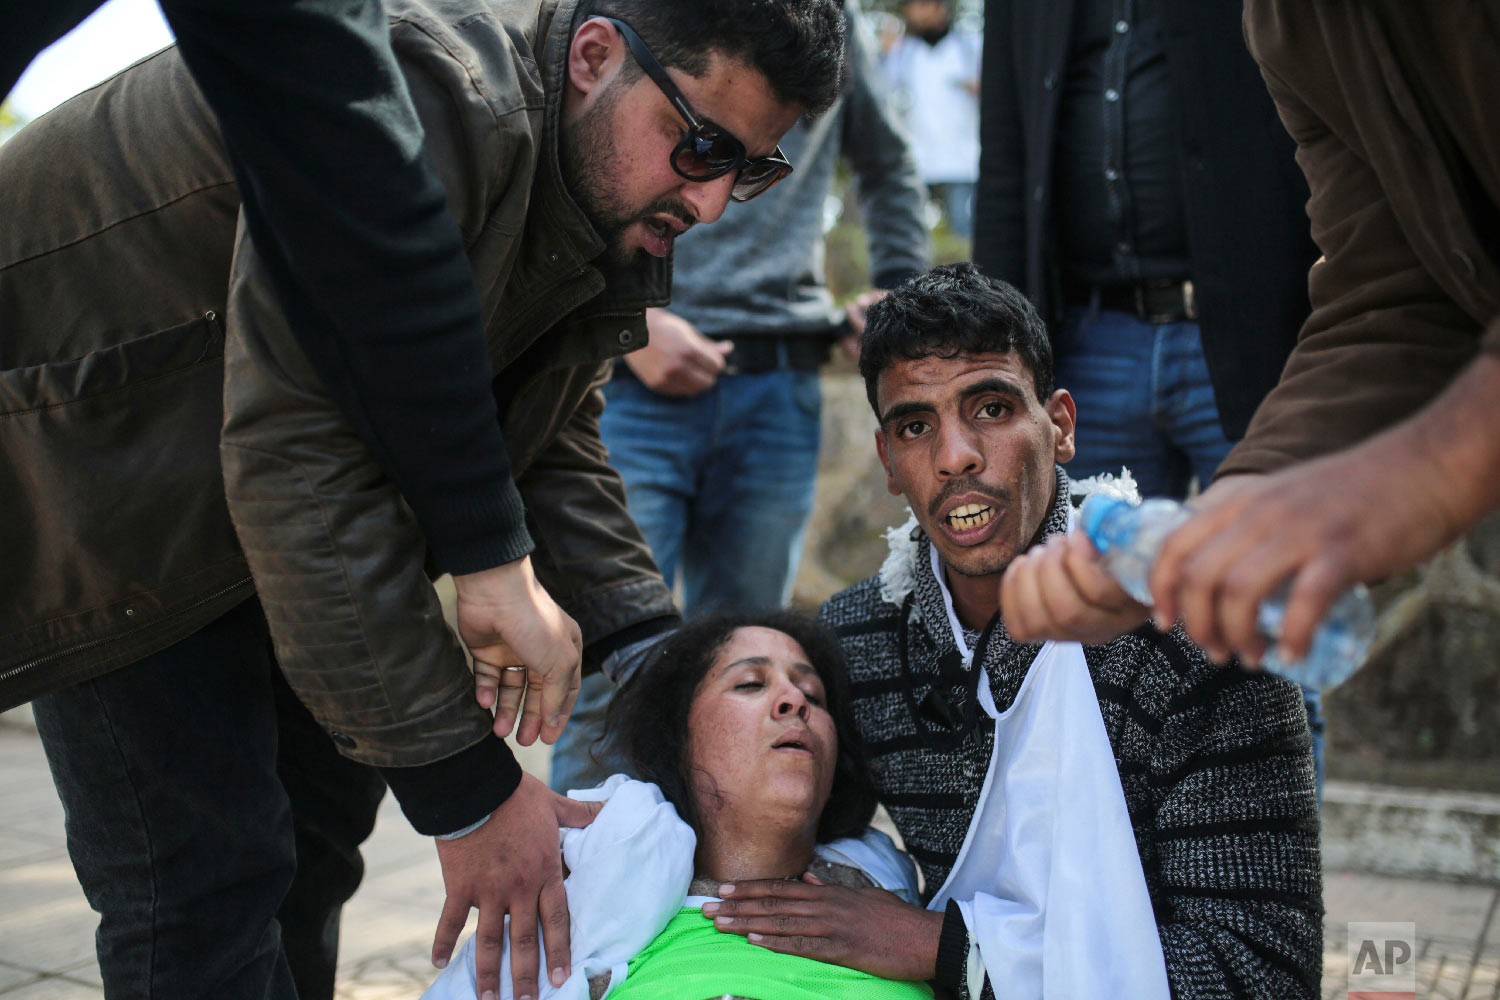 An injured protesting teacher is tended to by colleagues in Rabat, Morocco, Feb. 20, 2019. (AP Photo/Mosa'ab Elshamy)